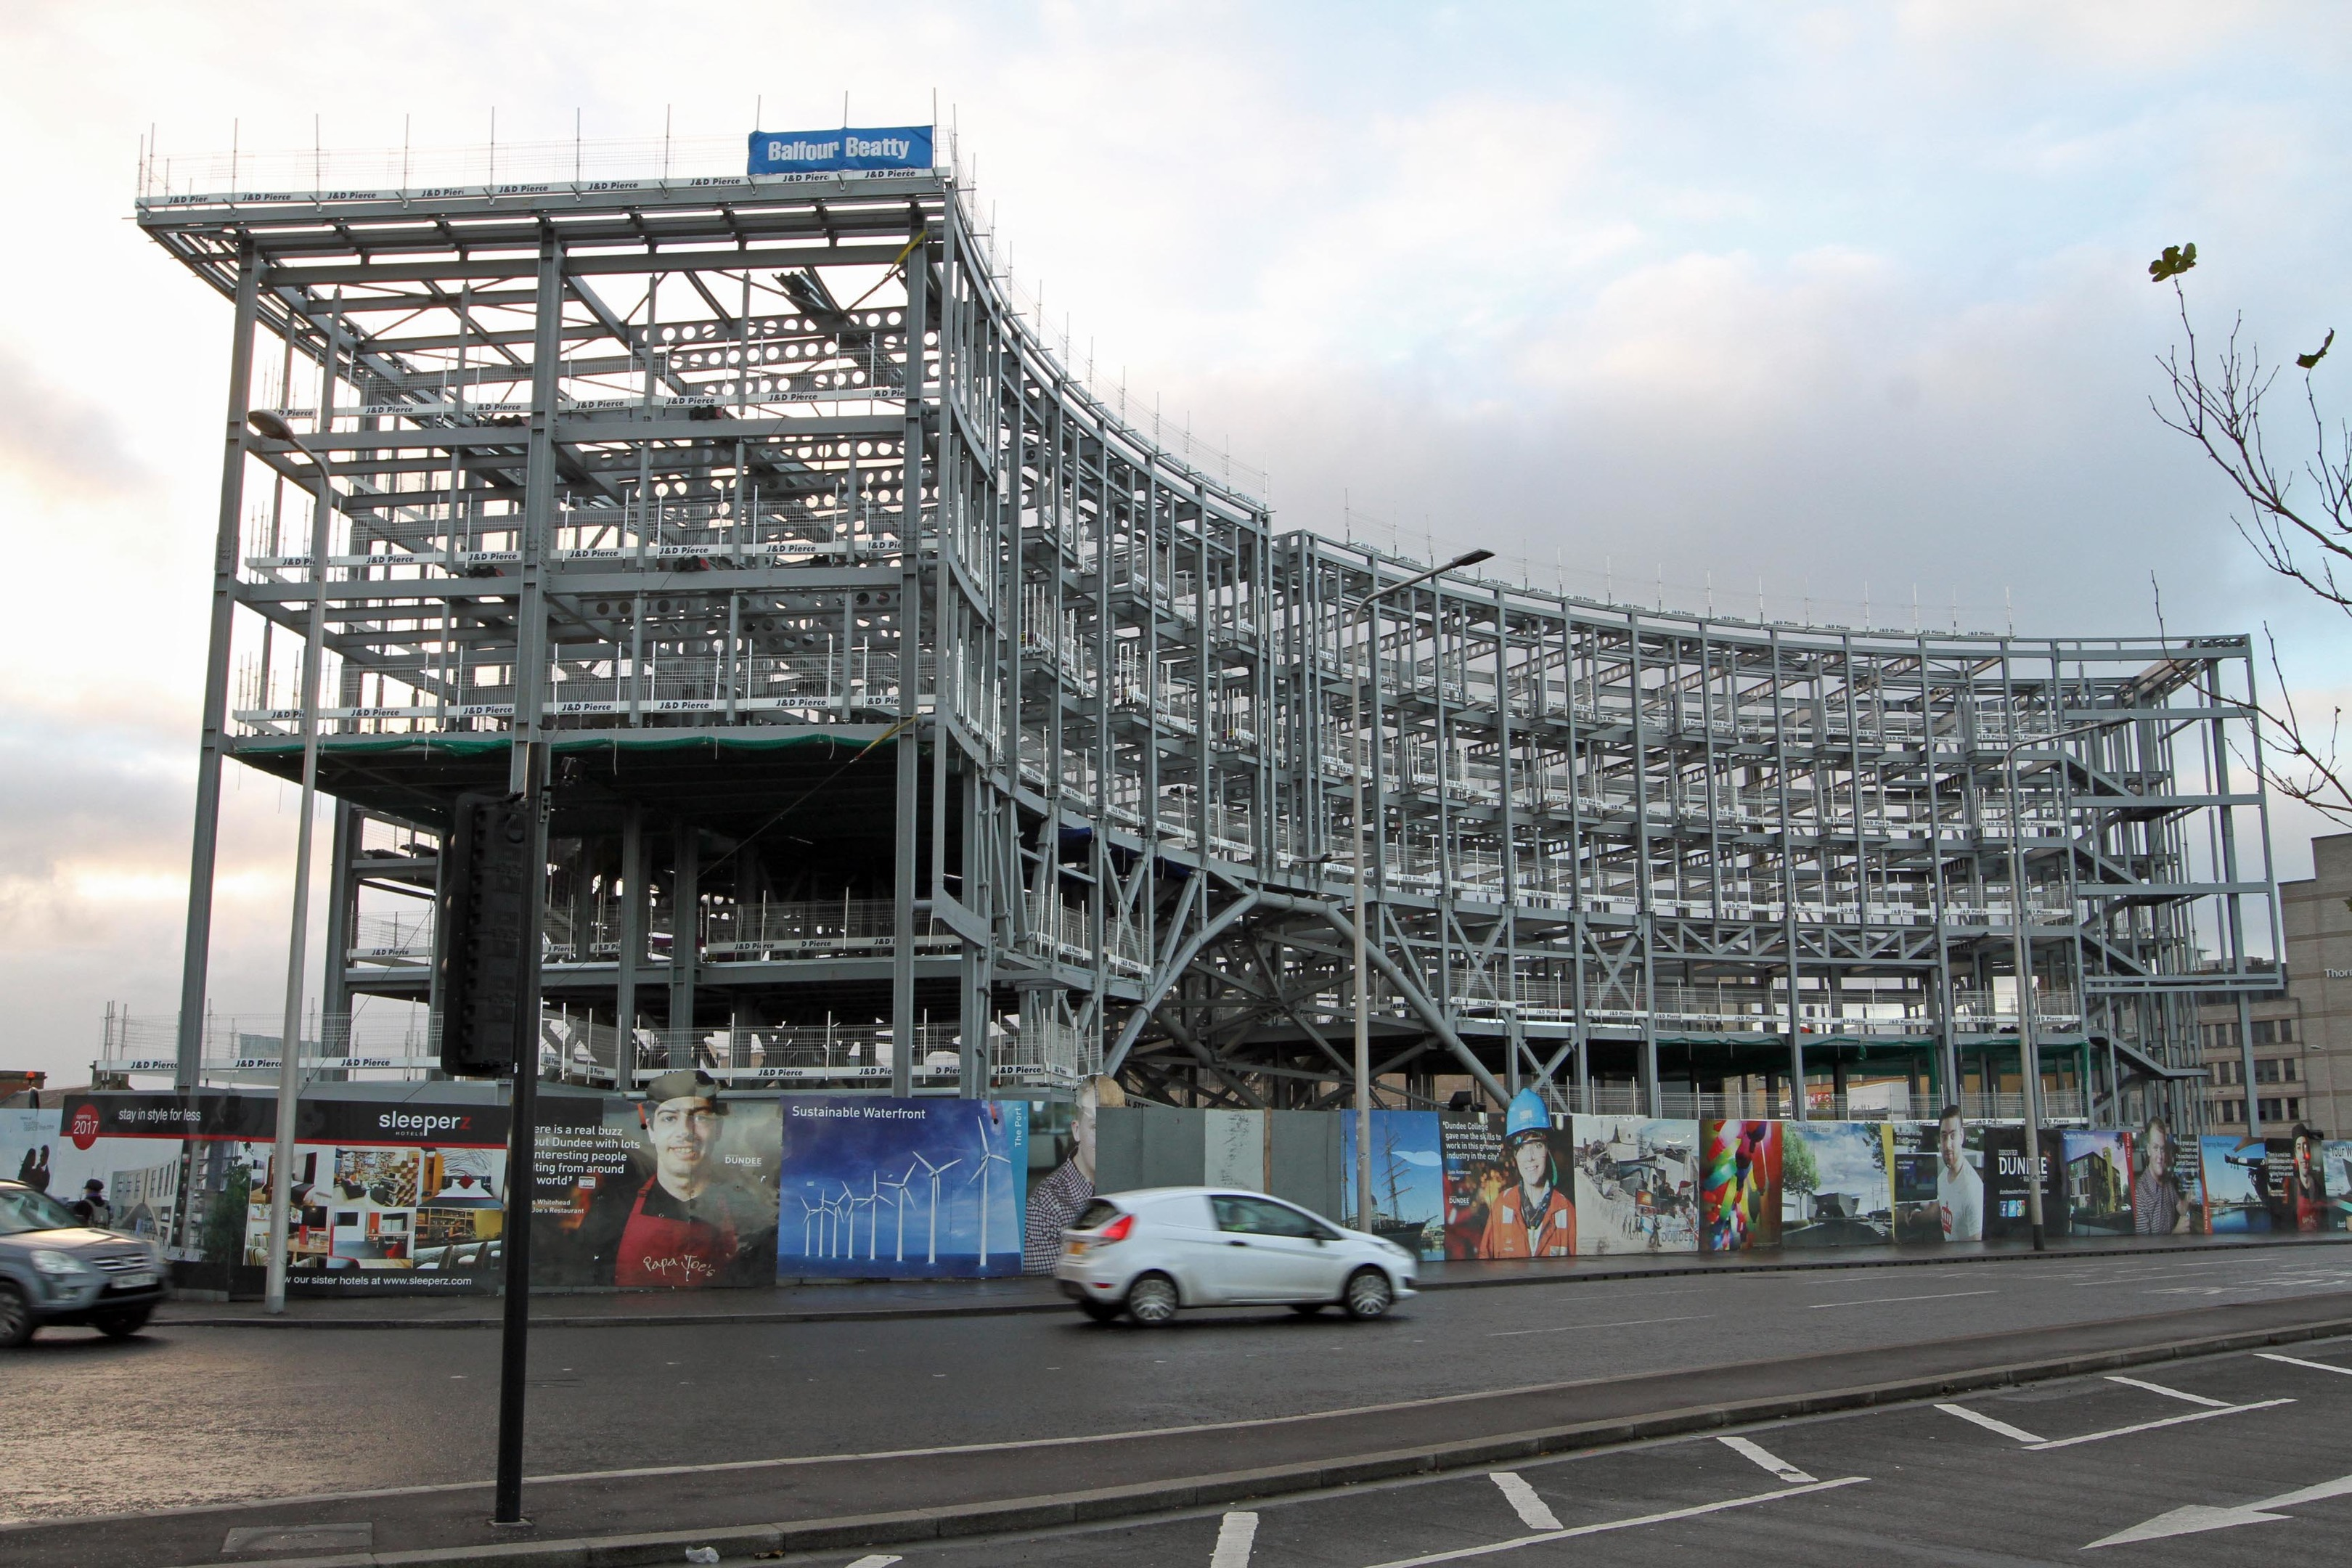 Work is progressing on Dundee station